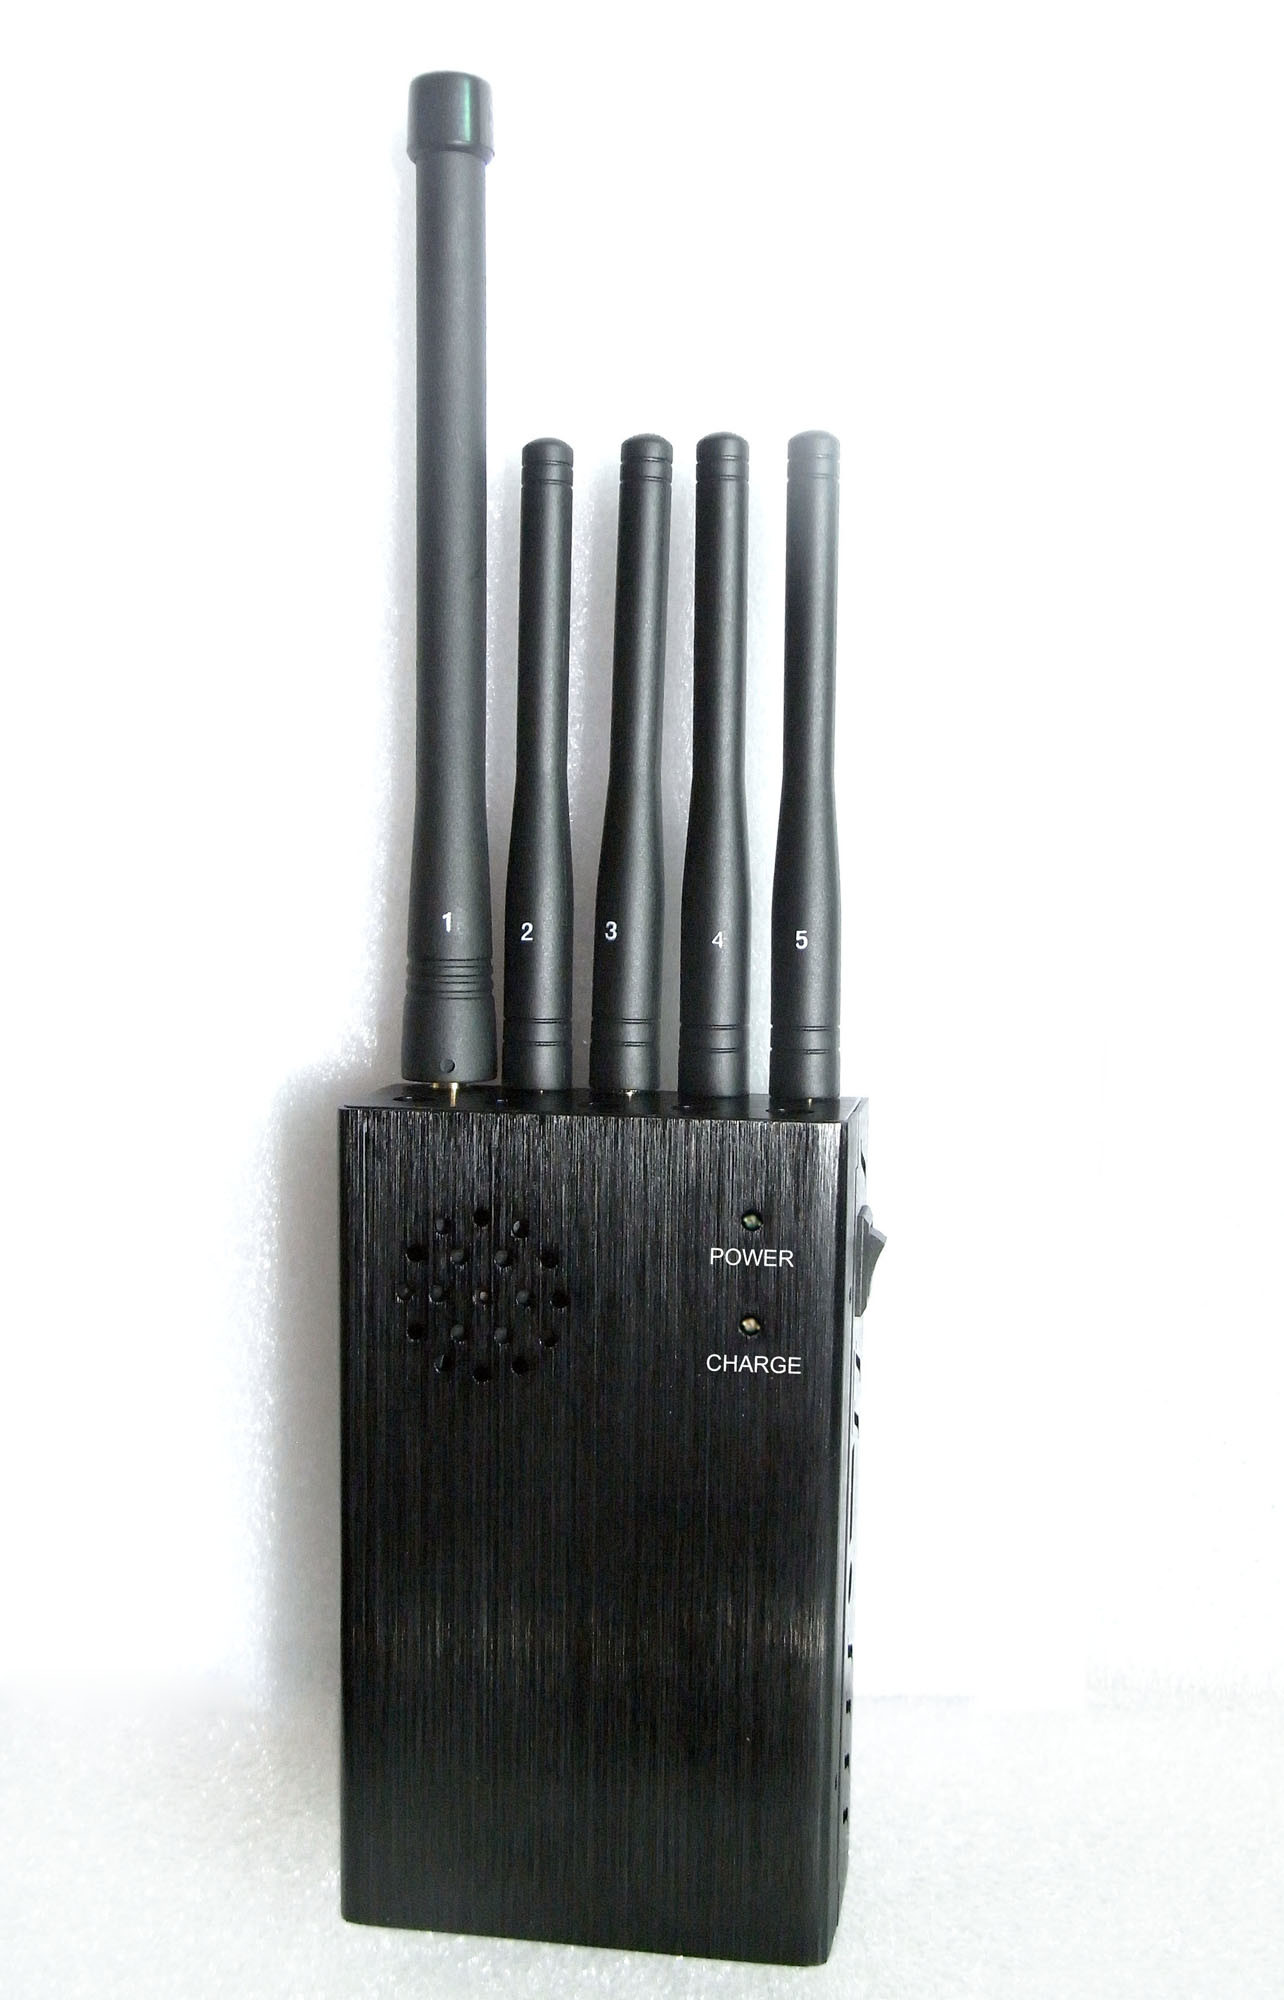 5 Antennas wifi signal Block